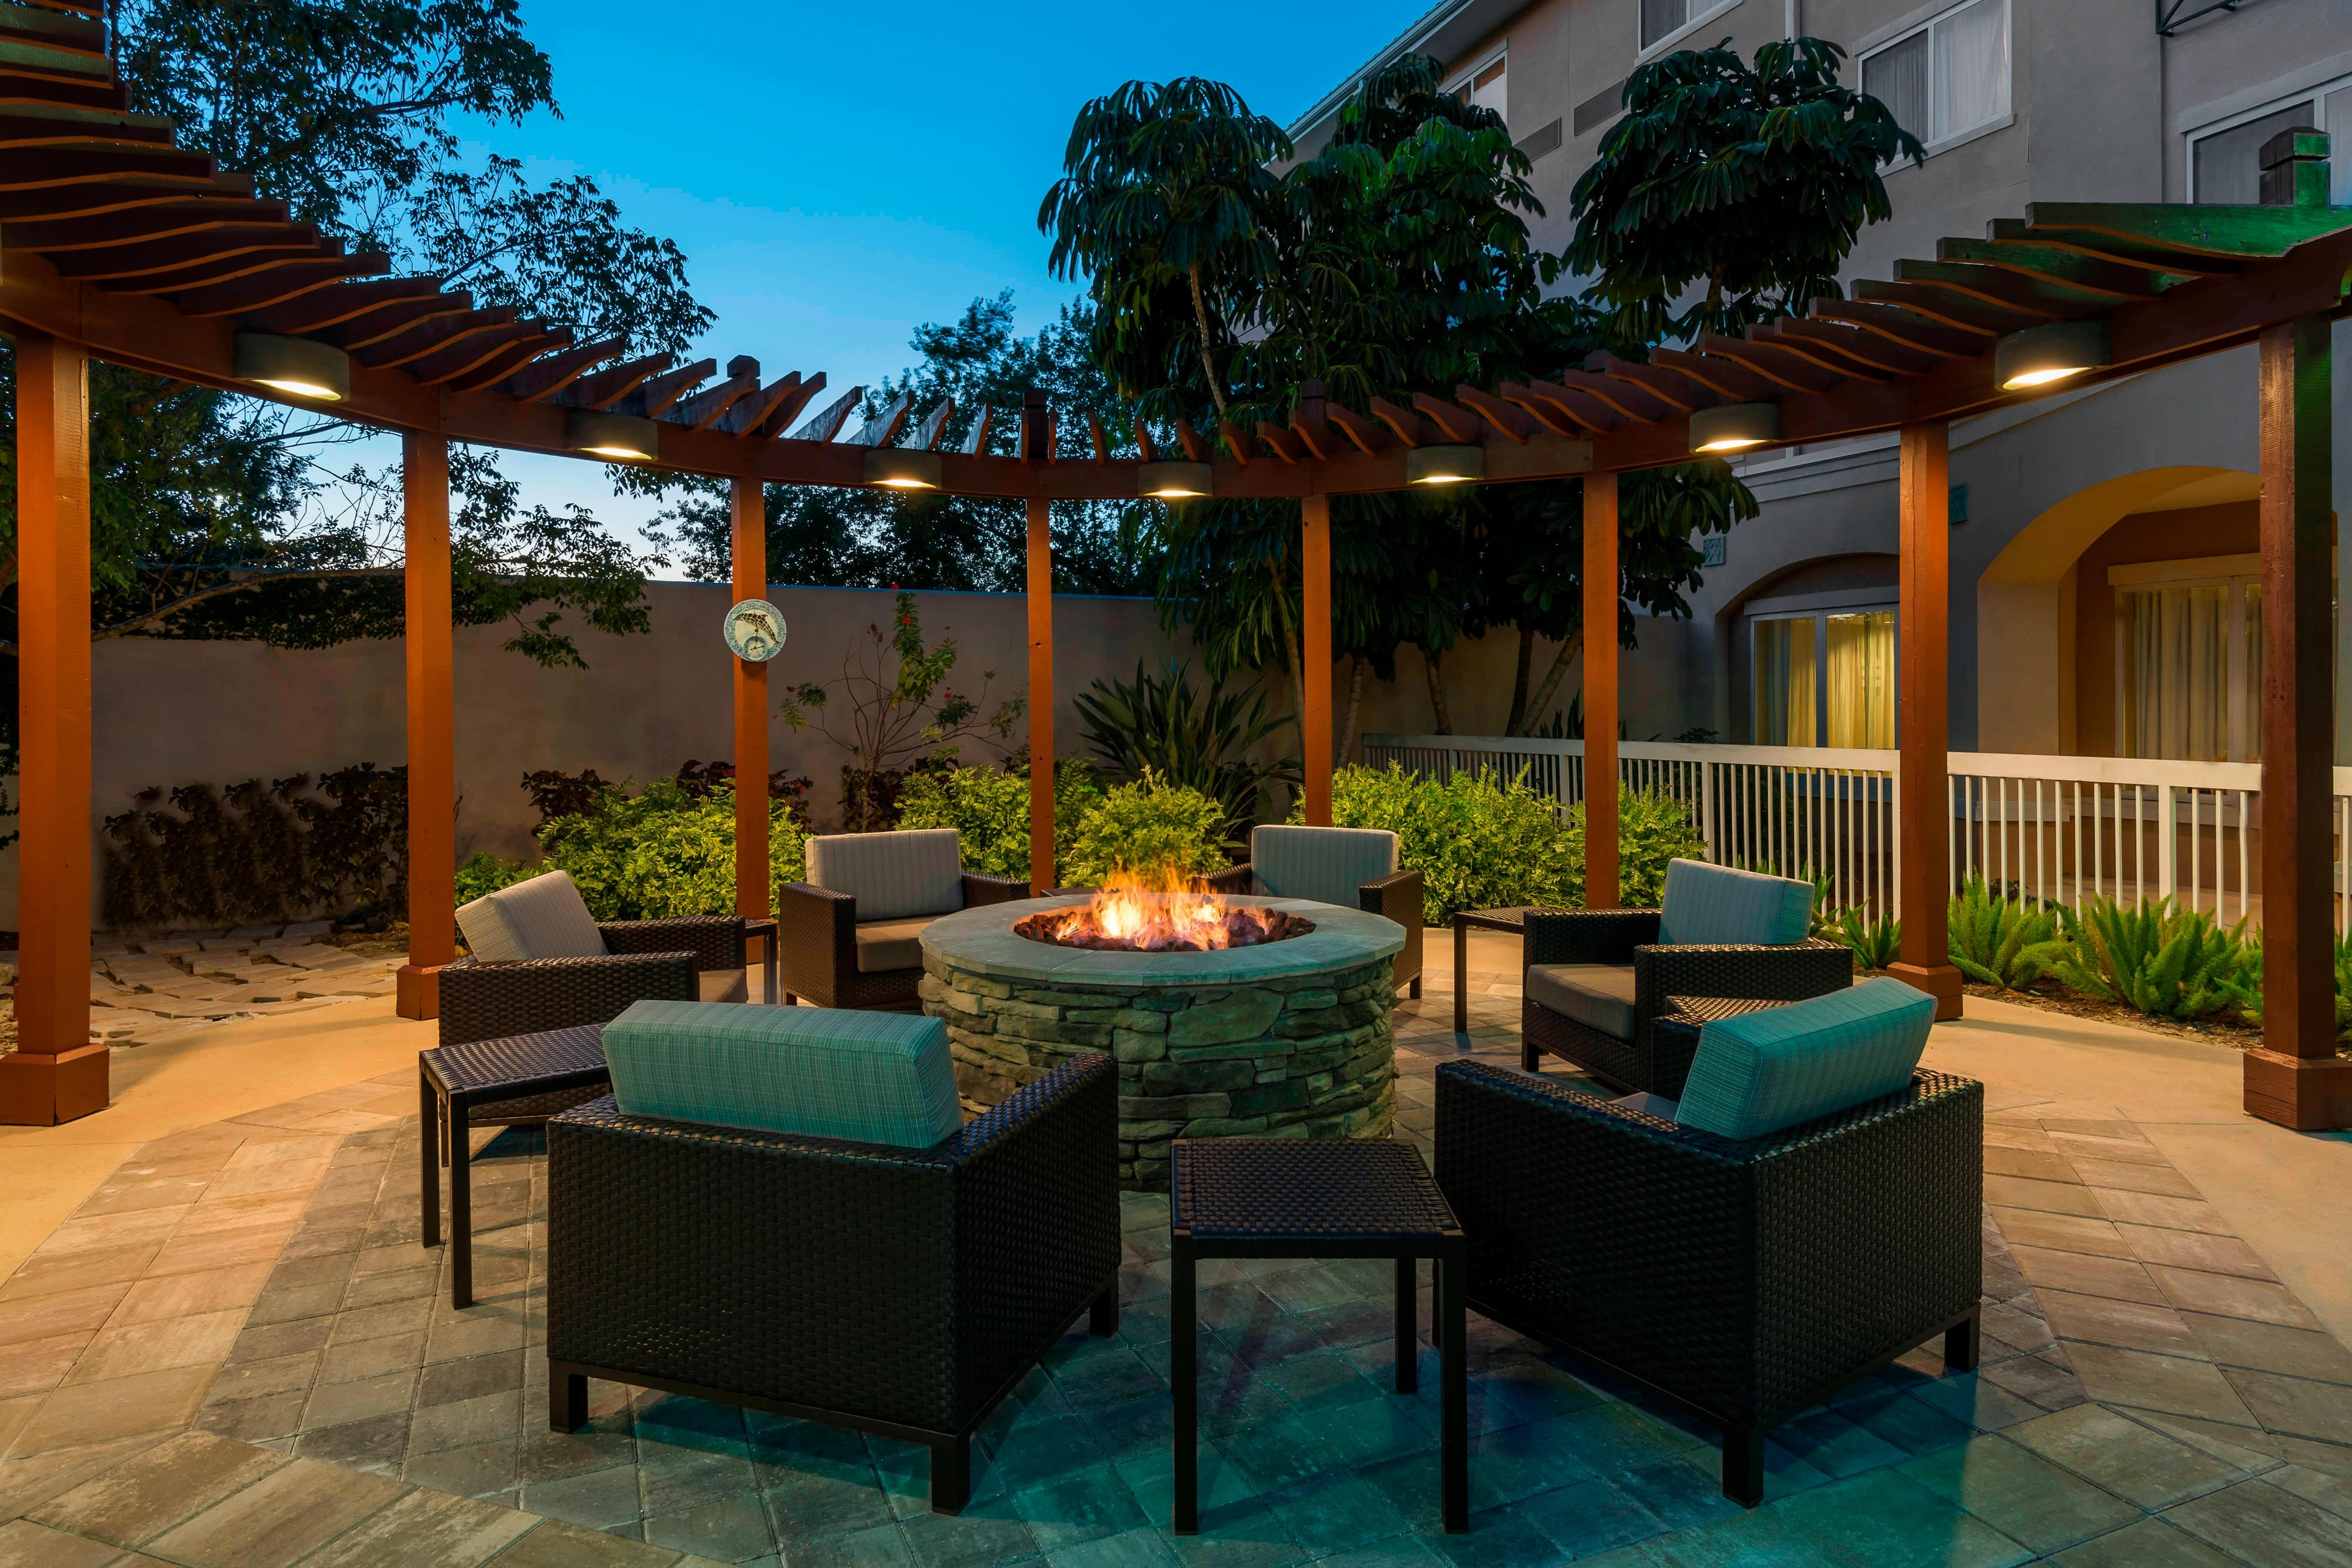 Hotel Fire Pit in Fort Myers FL